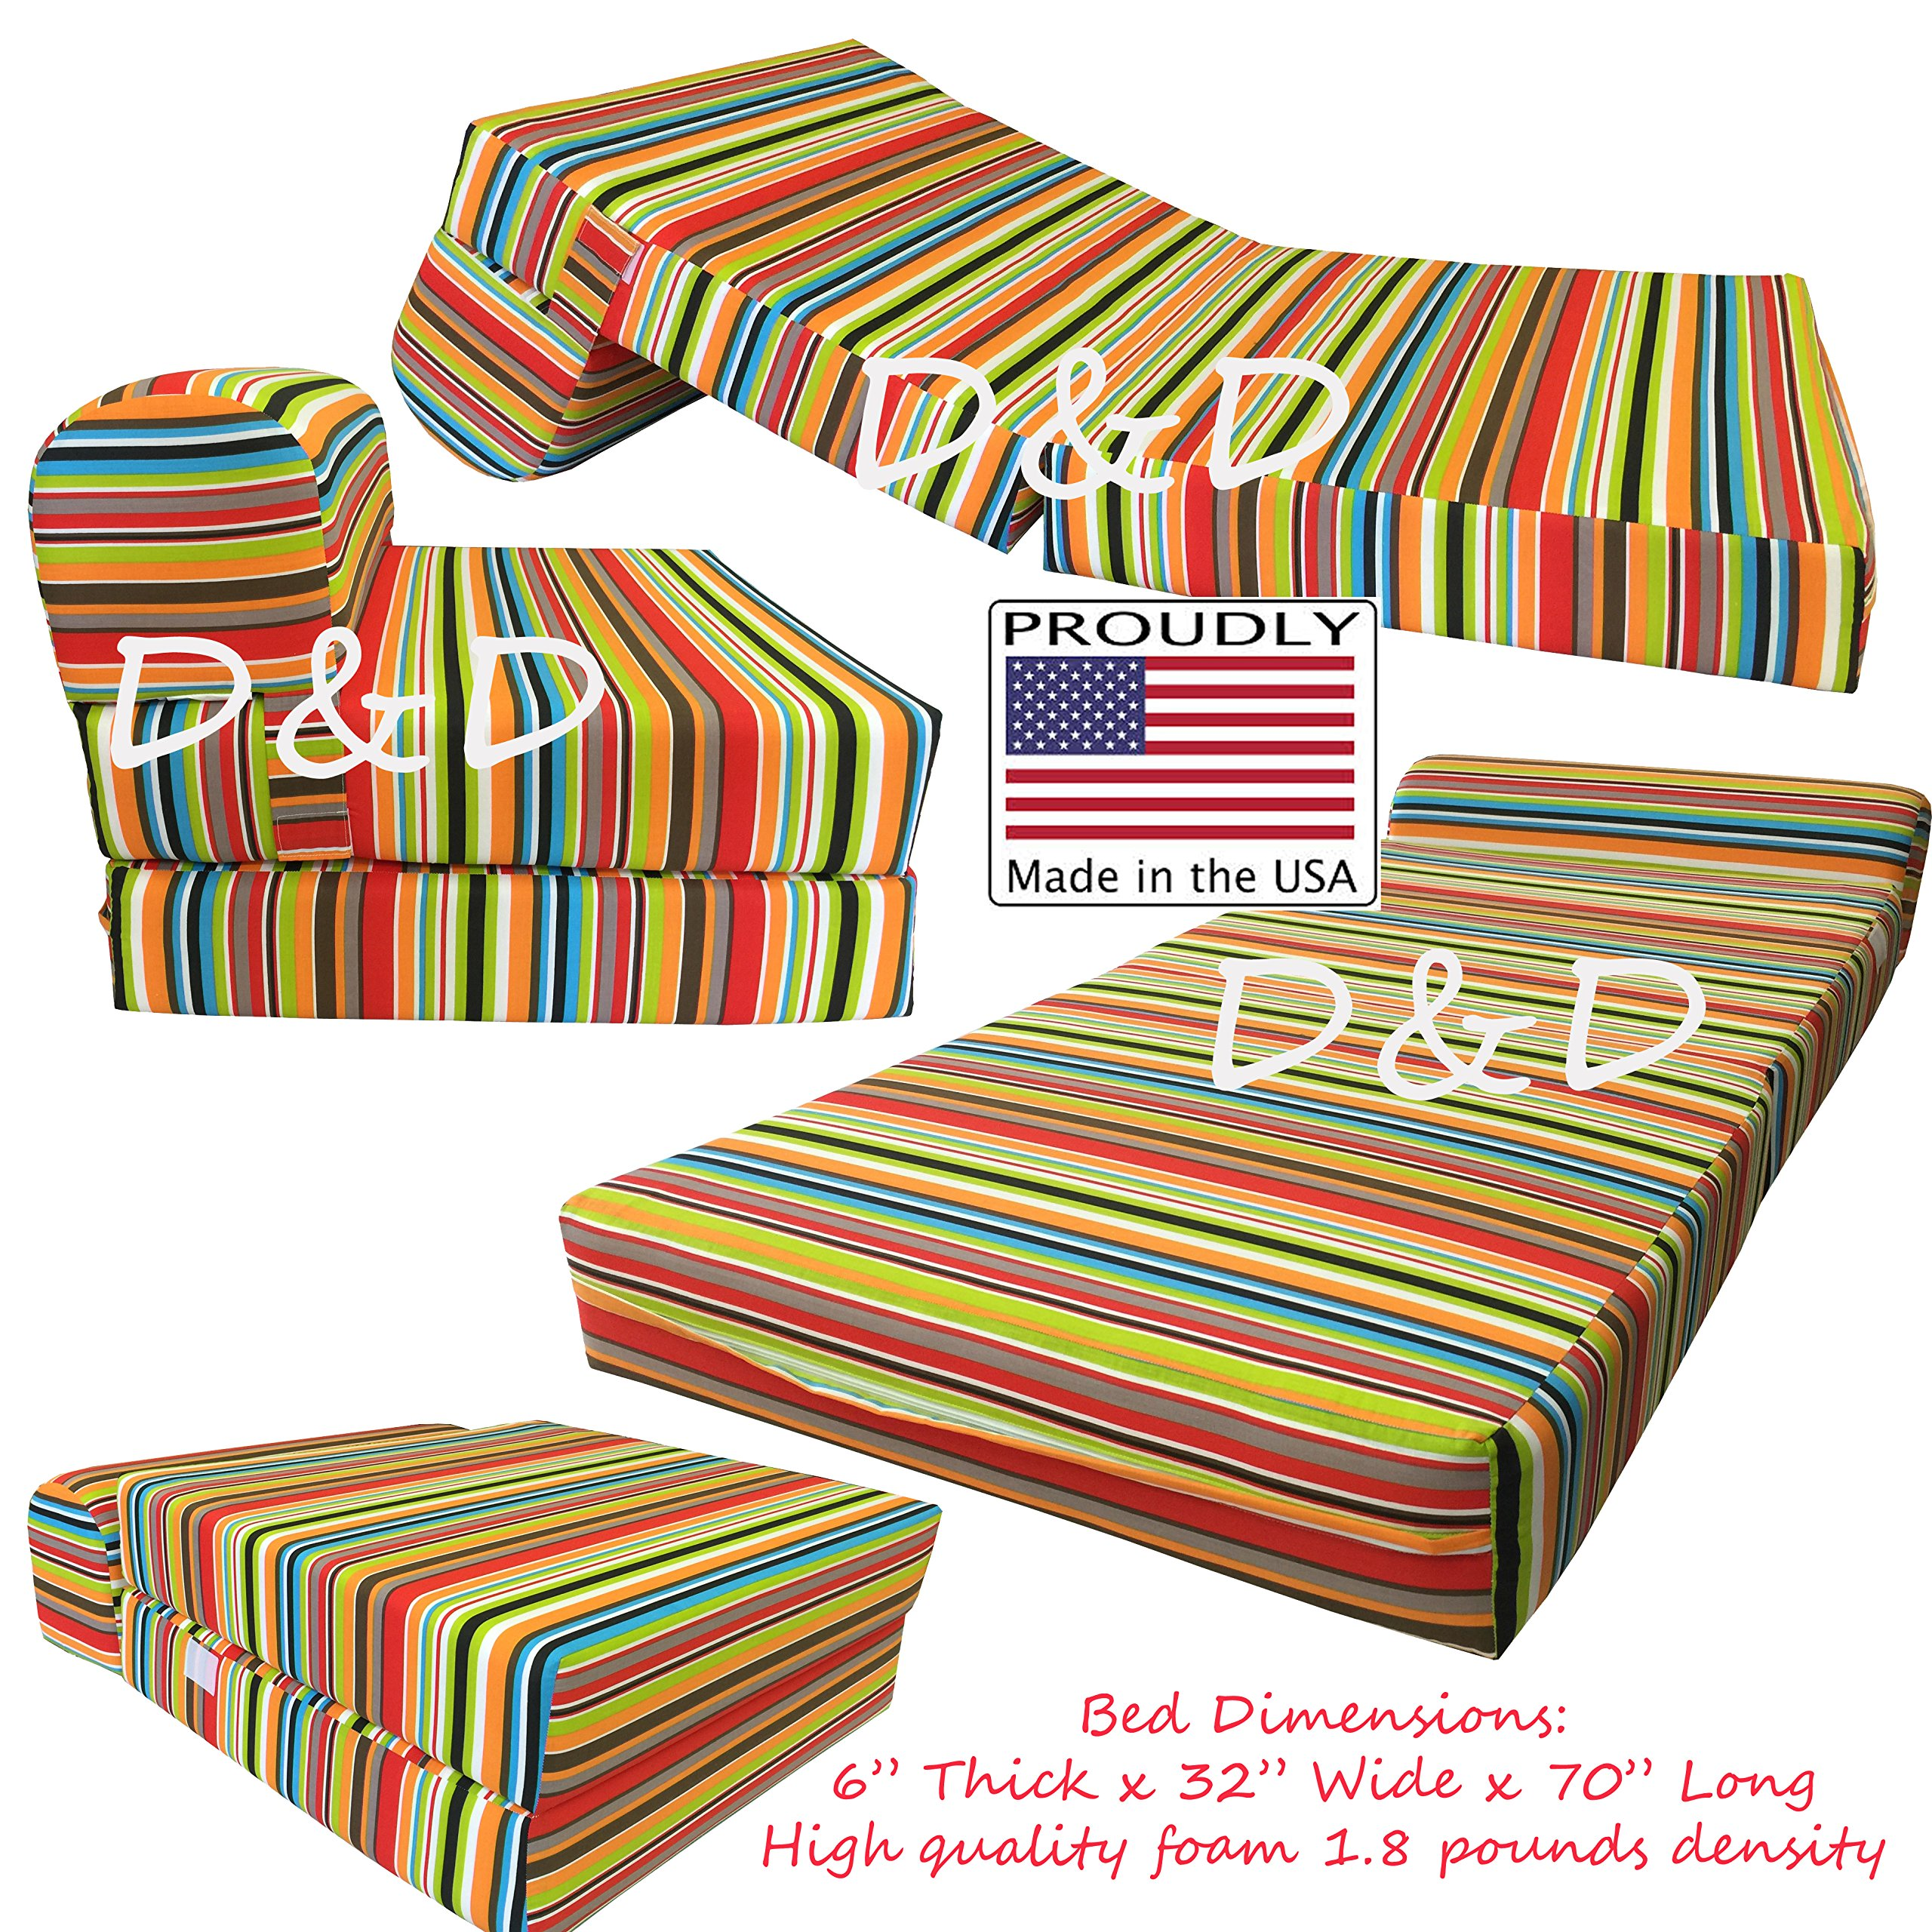 Multi Colors Stripes Twin Size Sleeper Chair Folding Foam Beds, Foam 1.8 Pounds Density Sofa Beds Couches 6'' Thick X 32'' Wide X70'' Long.